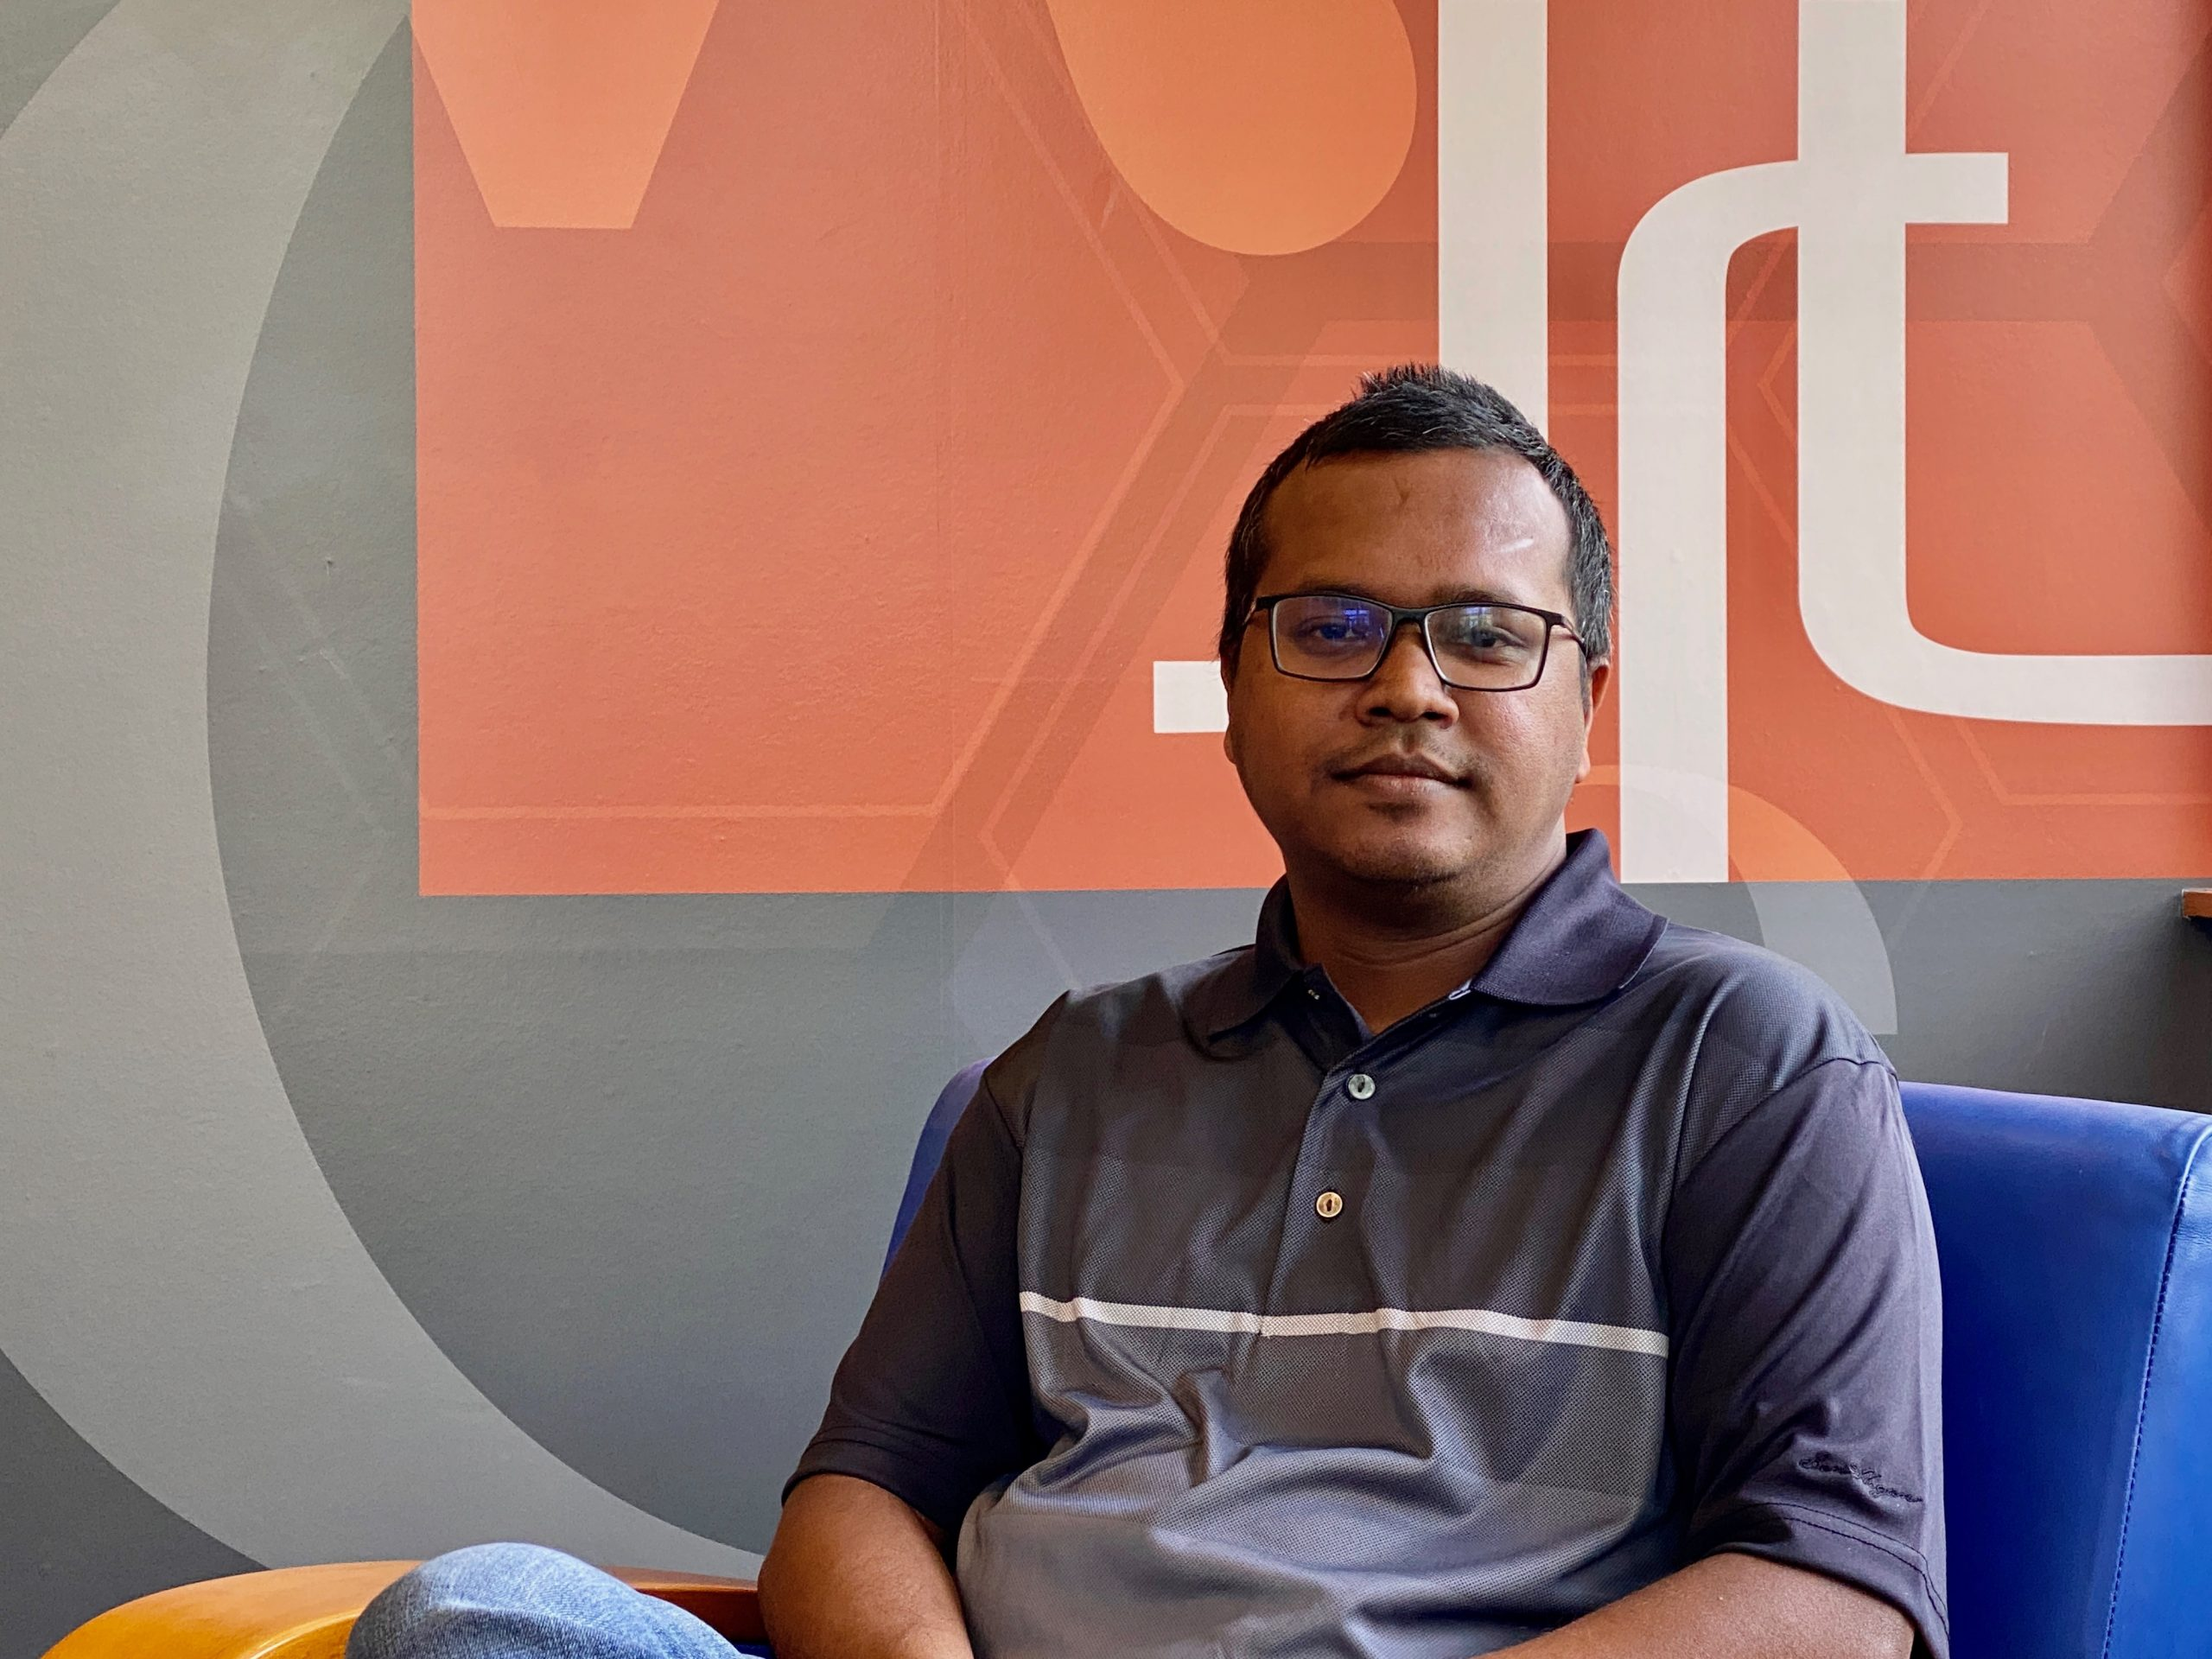 Learn About Our New Team Member: Zahid Islam